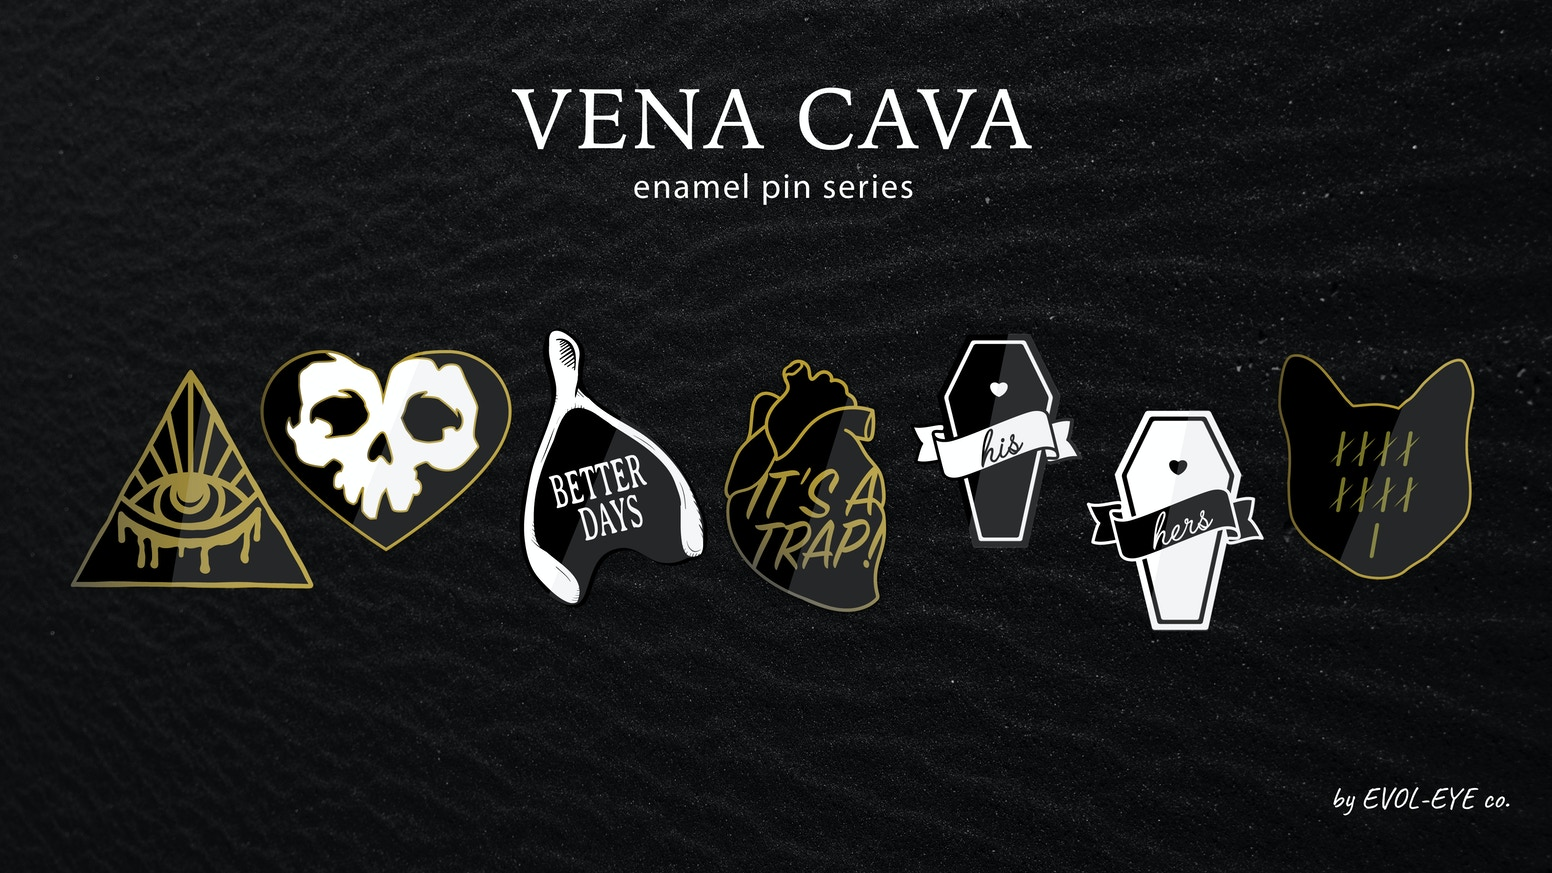 Enamel pin series featuring, love, loss, and hope for better days.